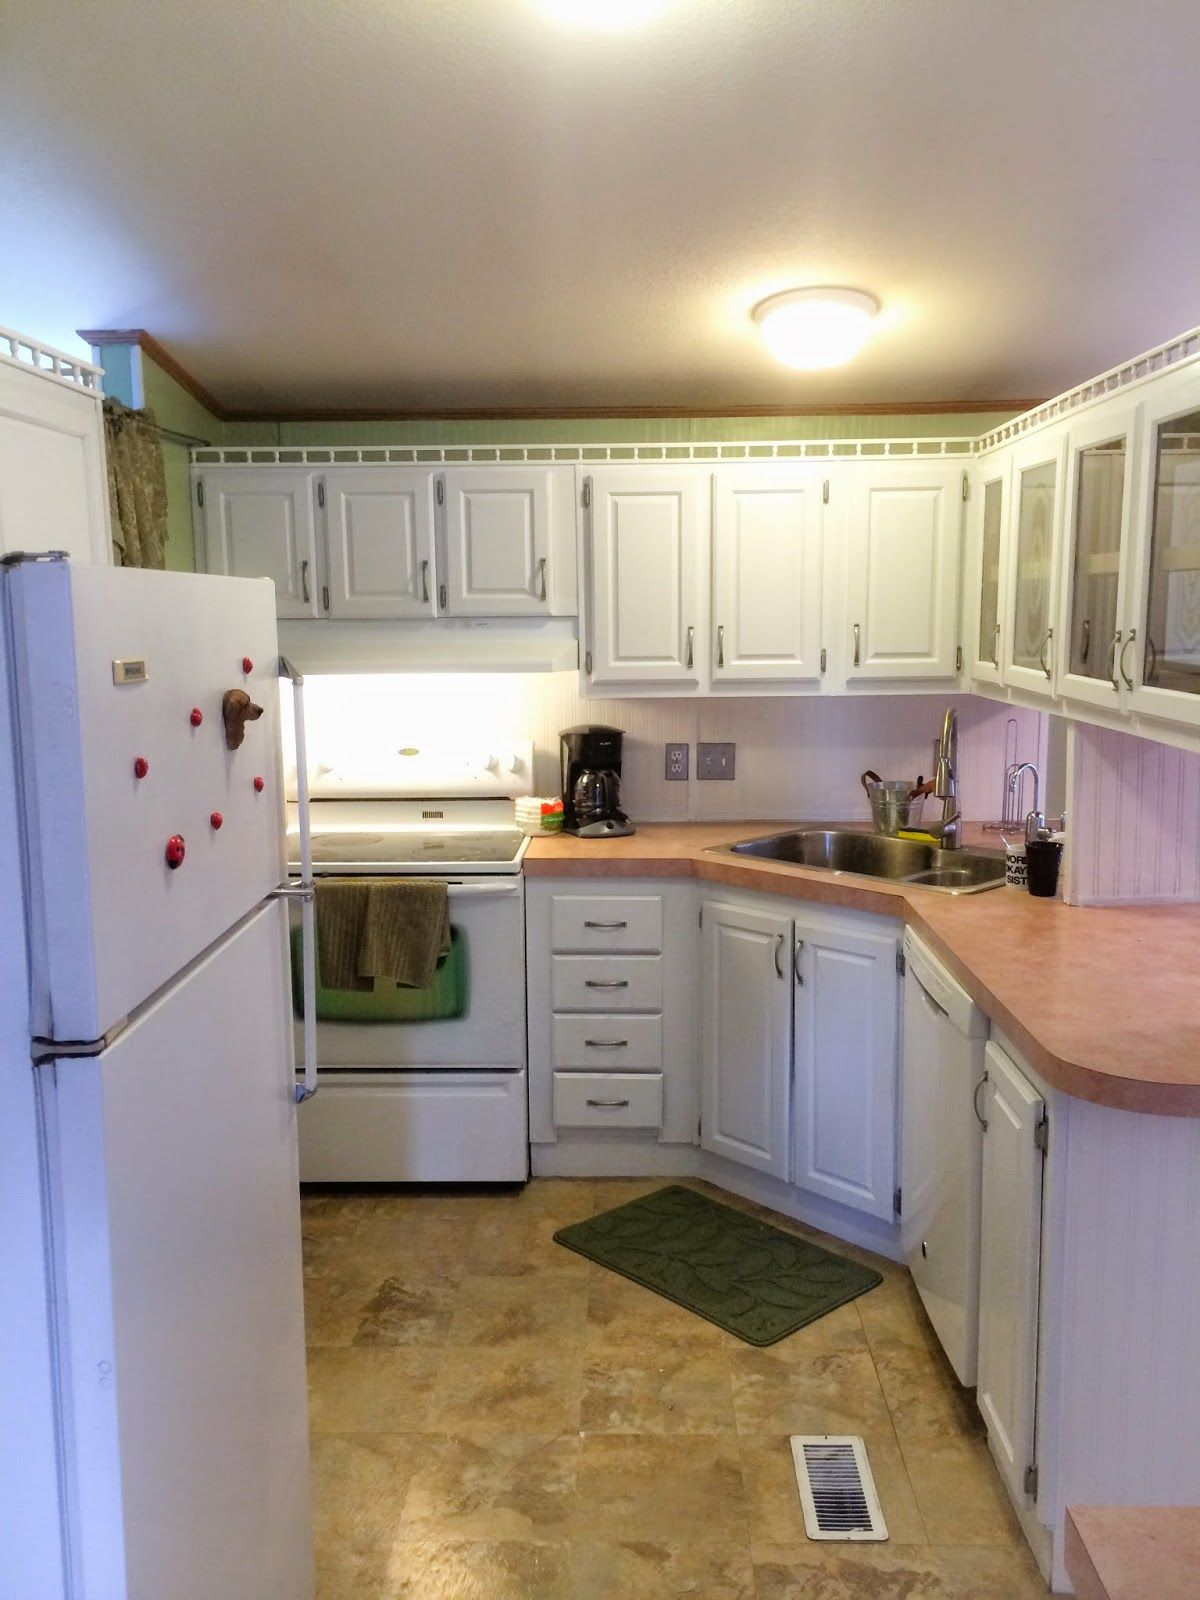 Can You Paint Fake Wood Cabinets In Manufactured Home